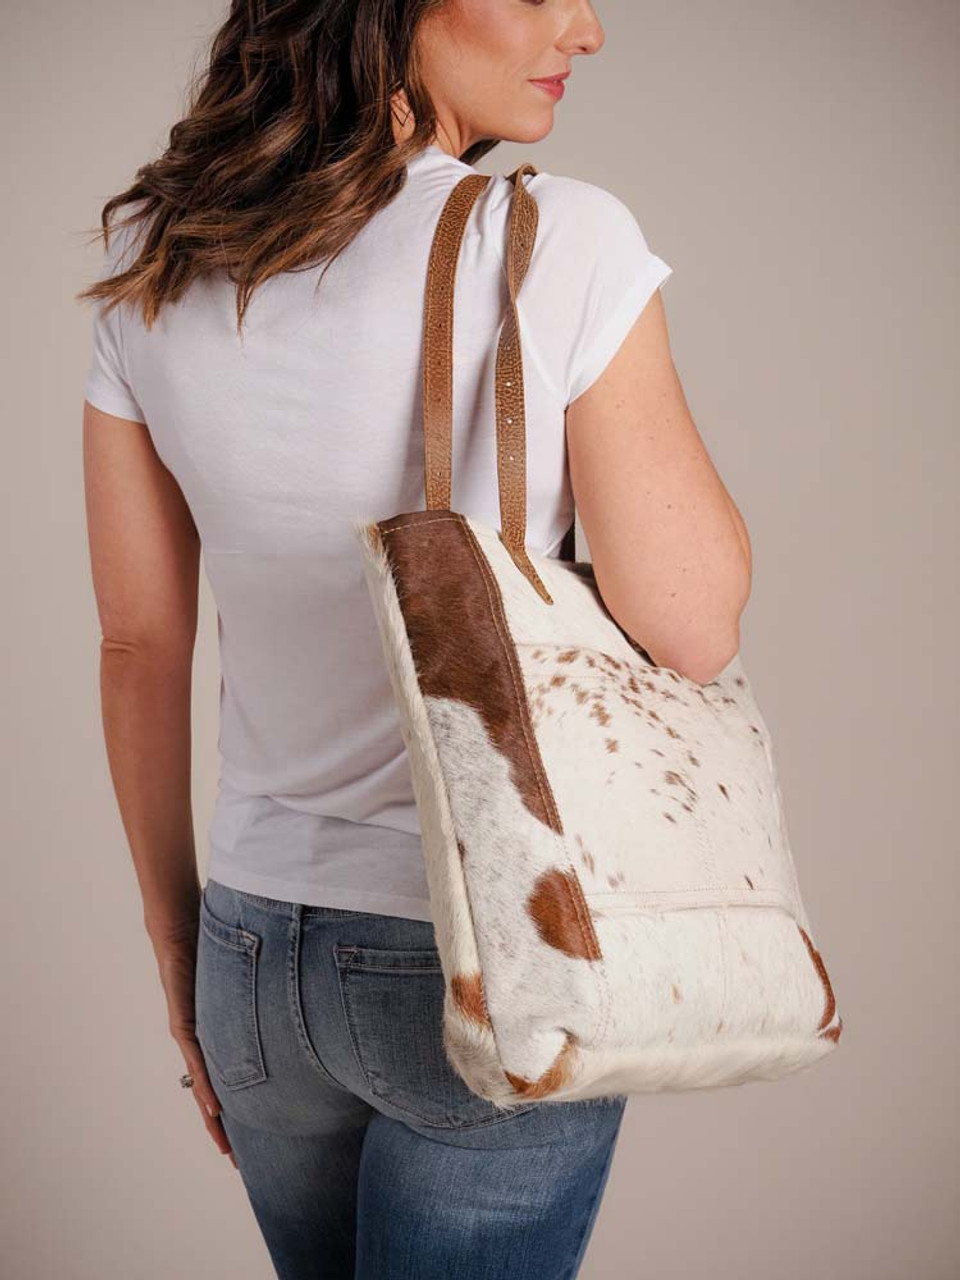 This white and brown hairon bag is the perfect to carry all your essentials. It is spacious, simple and chic. It is a pleasure to carry on your shoulder proportionately making it a style statement. Its has two flat genuine leather straps, a divided slip pocket in front and a zipper pocket in back; zippered top closure; fully lined inside with two slip pockets and a zipper pocket.